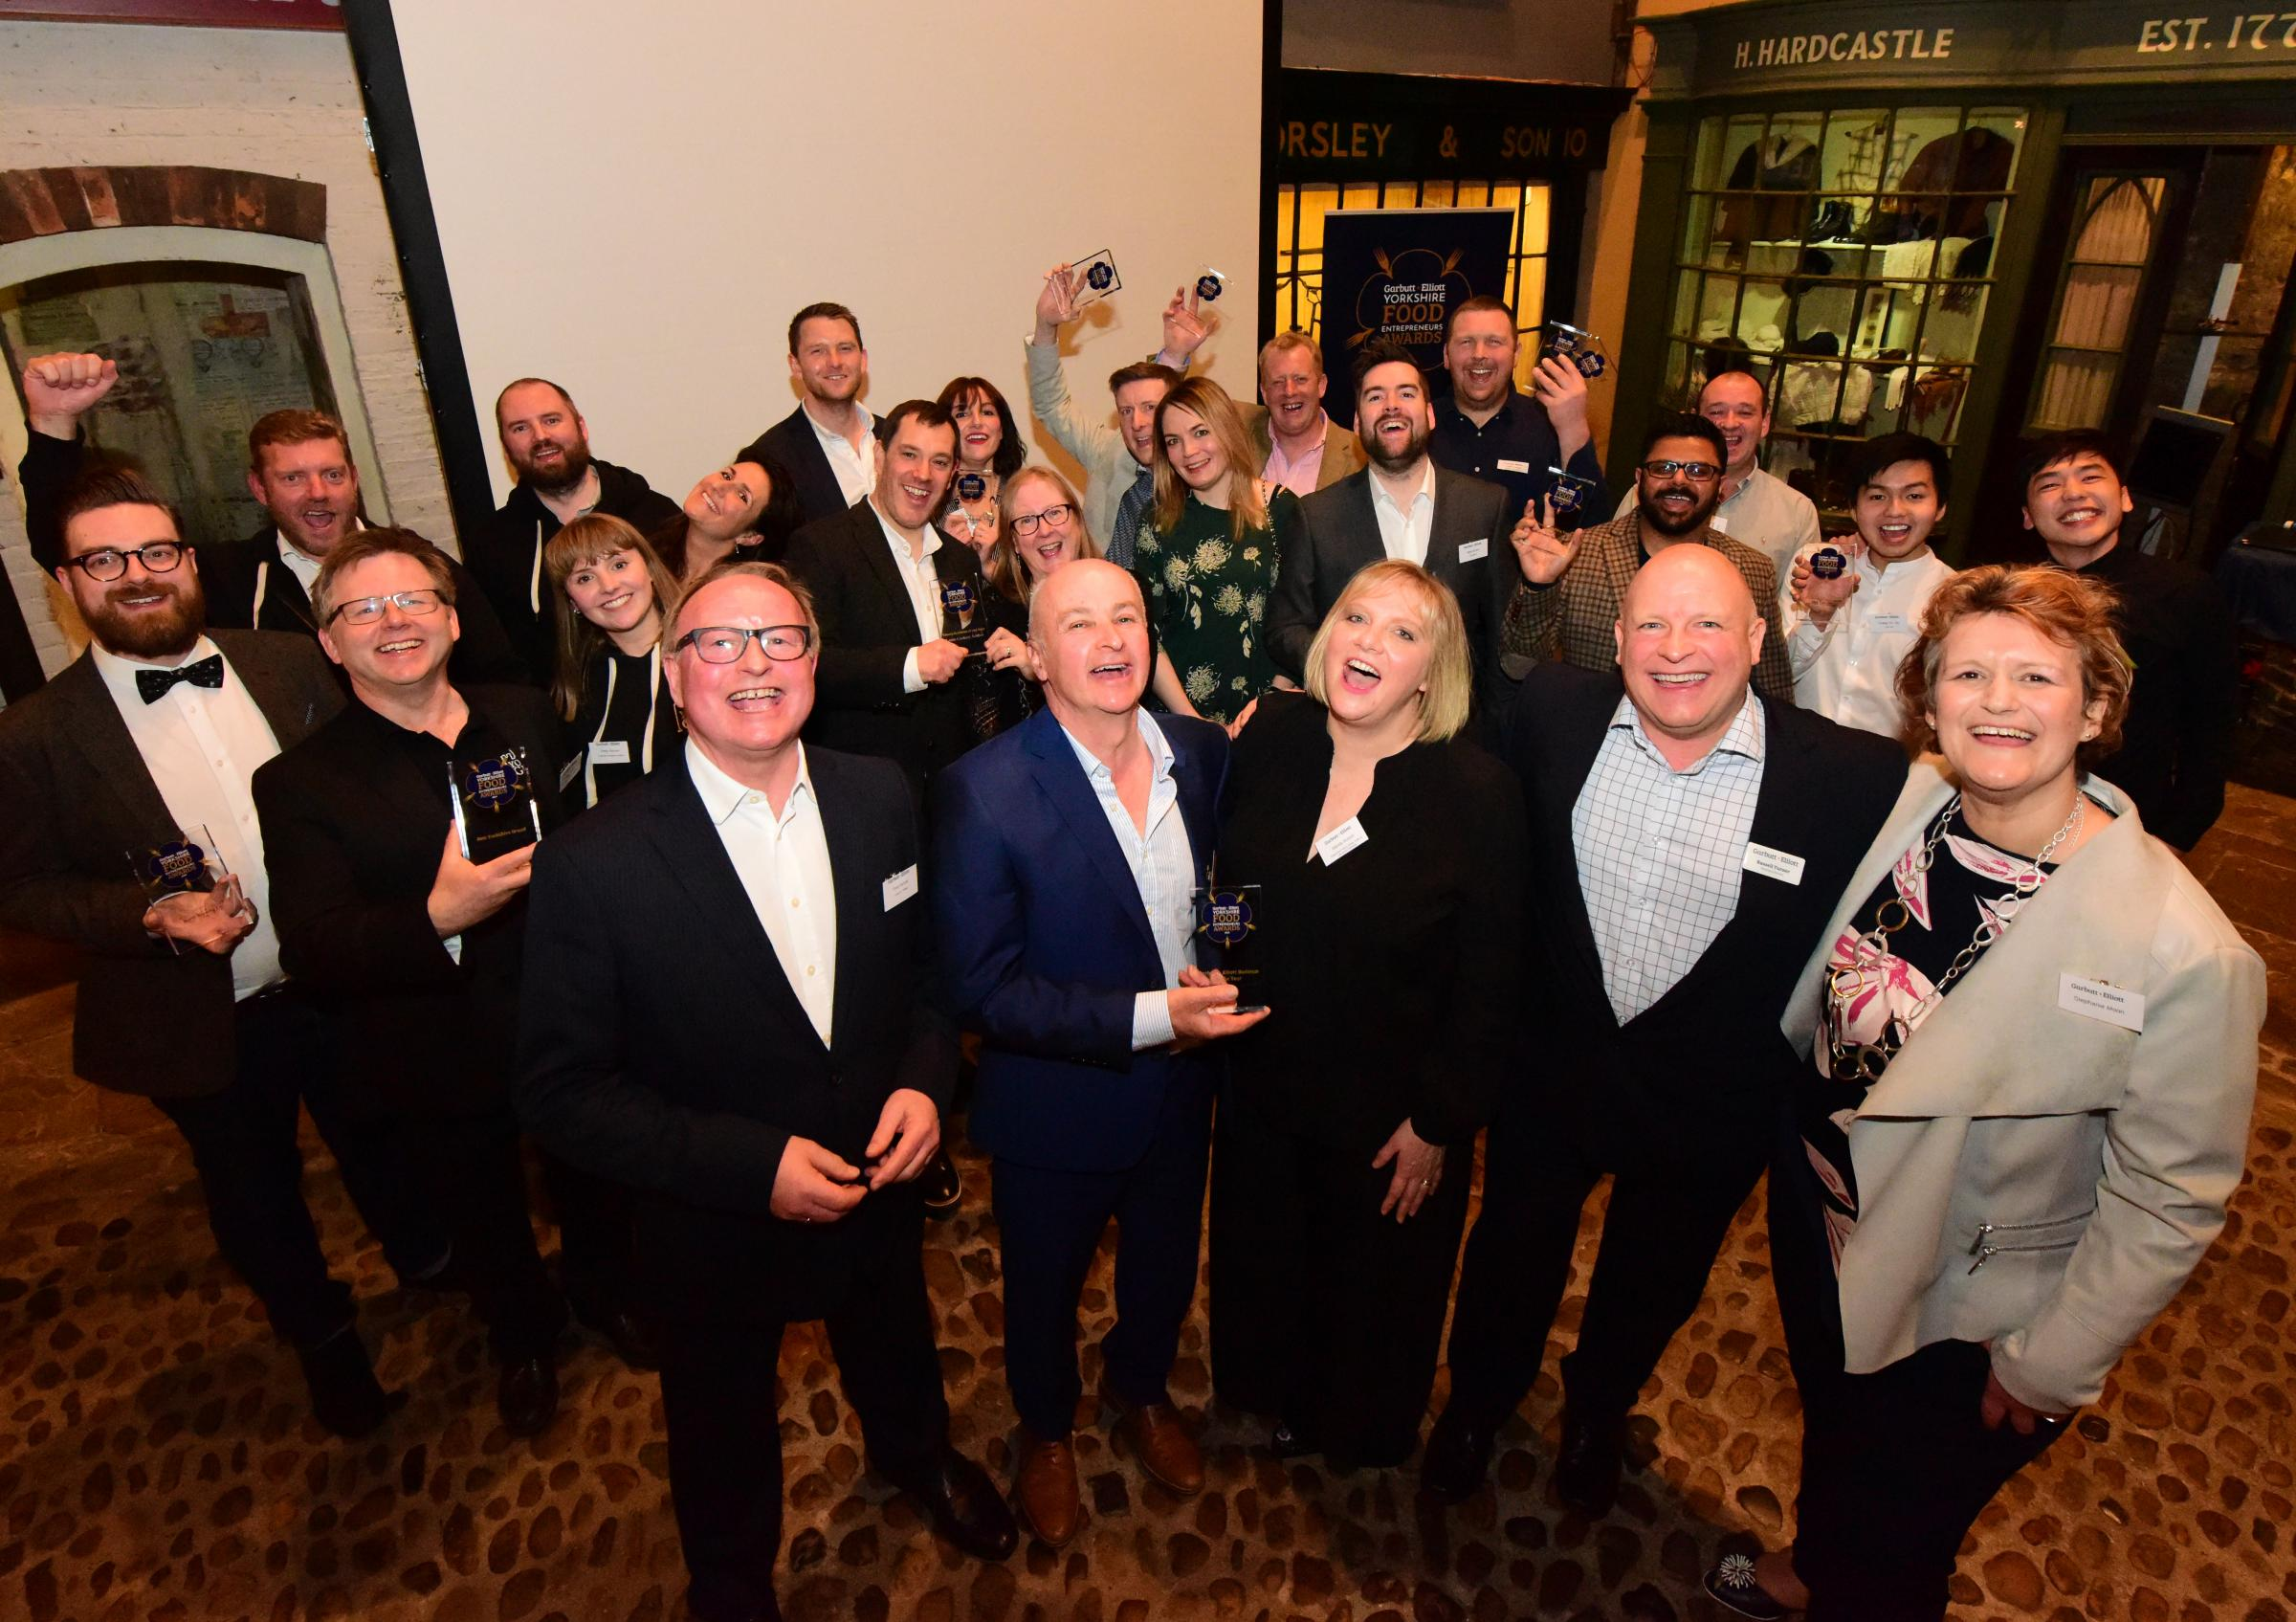 CHEERS: the winners at the Garbutt & Elliott Food Entrepreneurs Awards toast their success